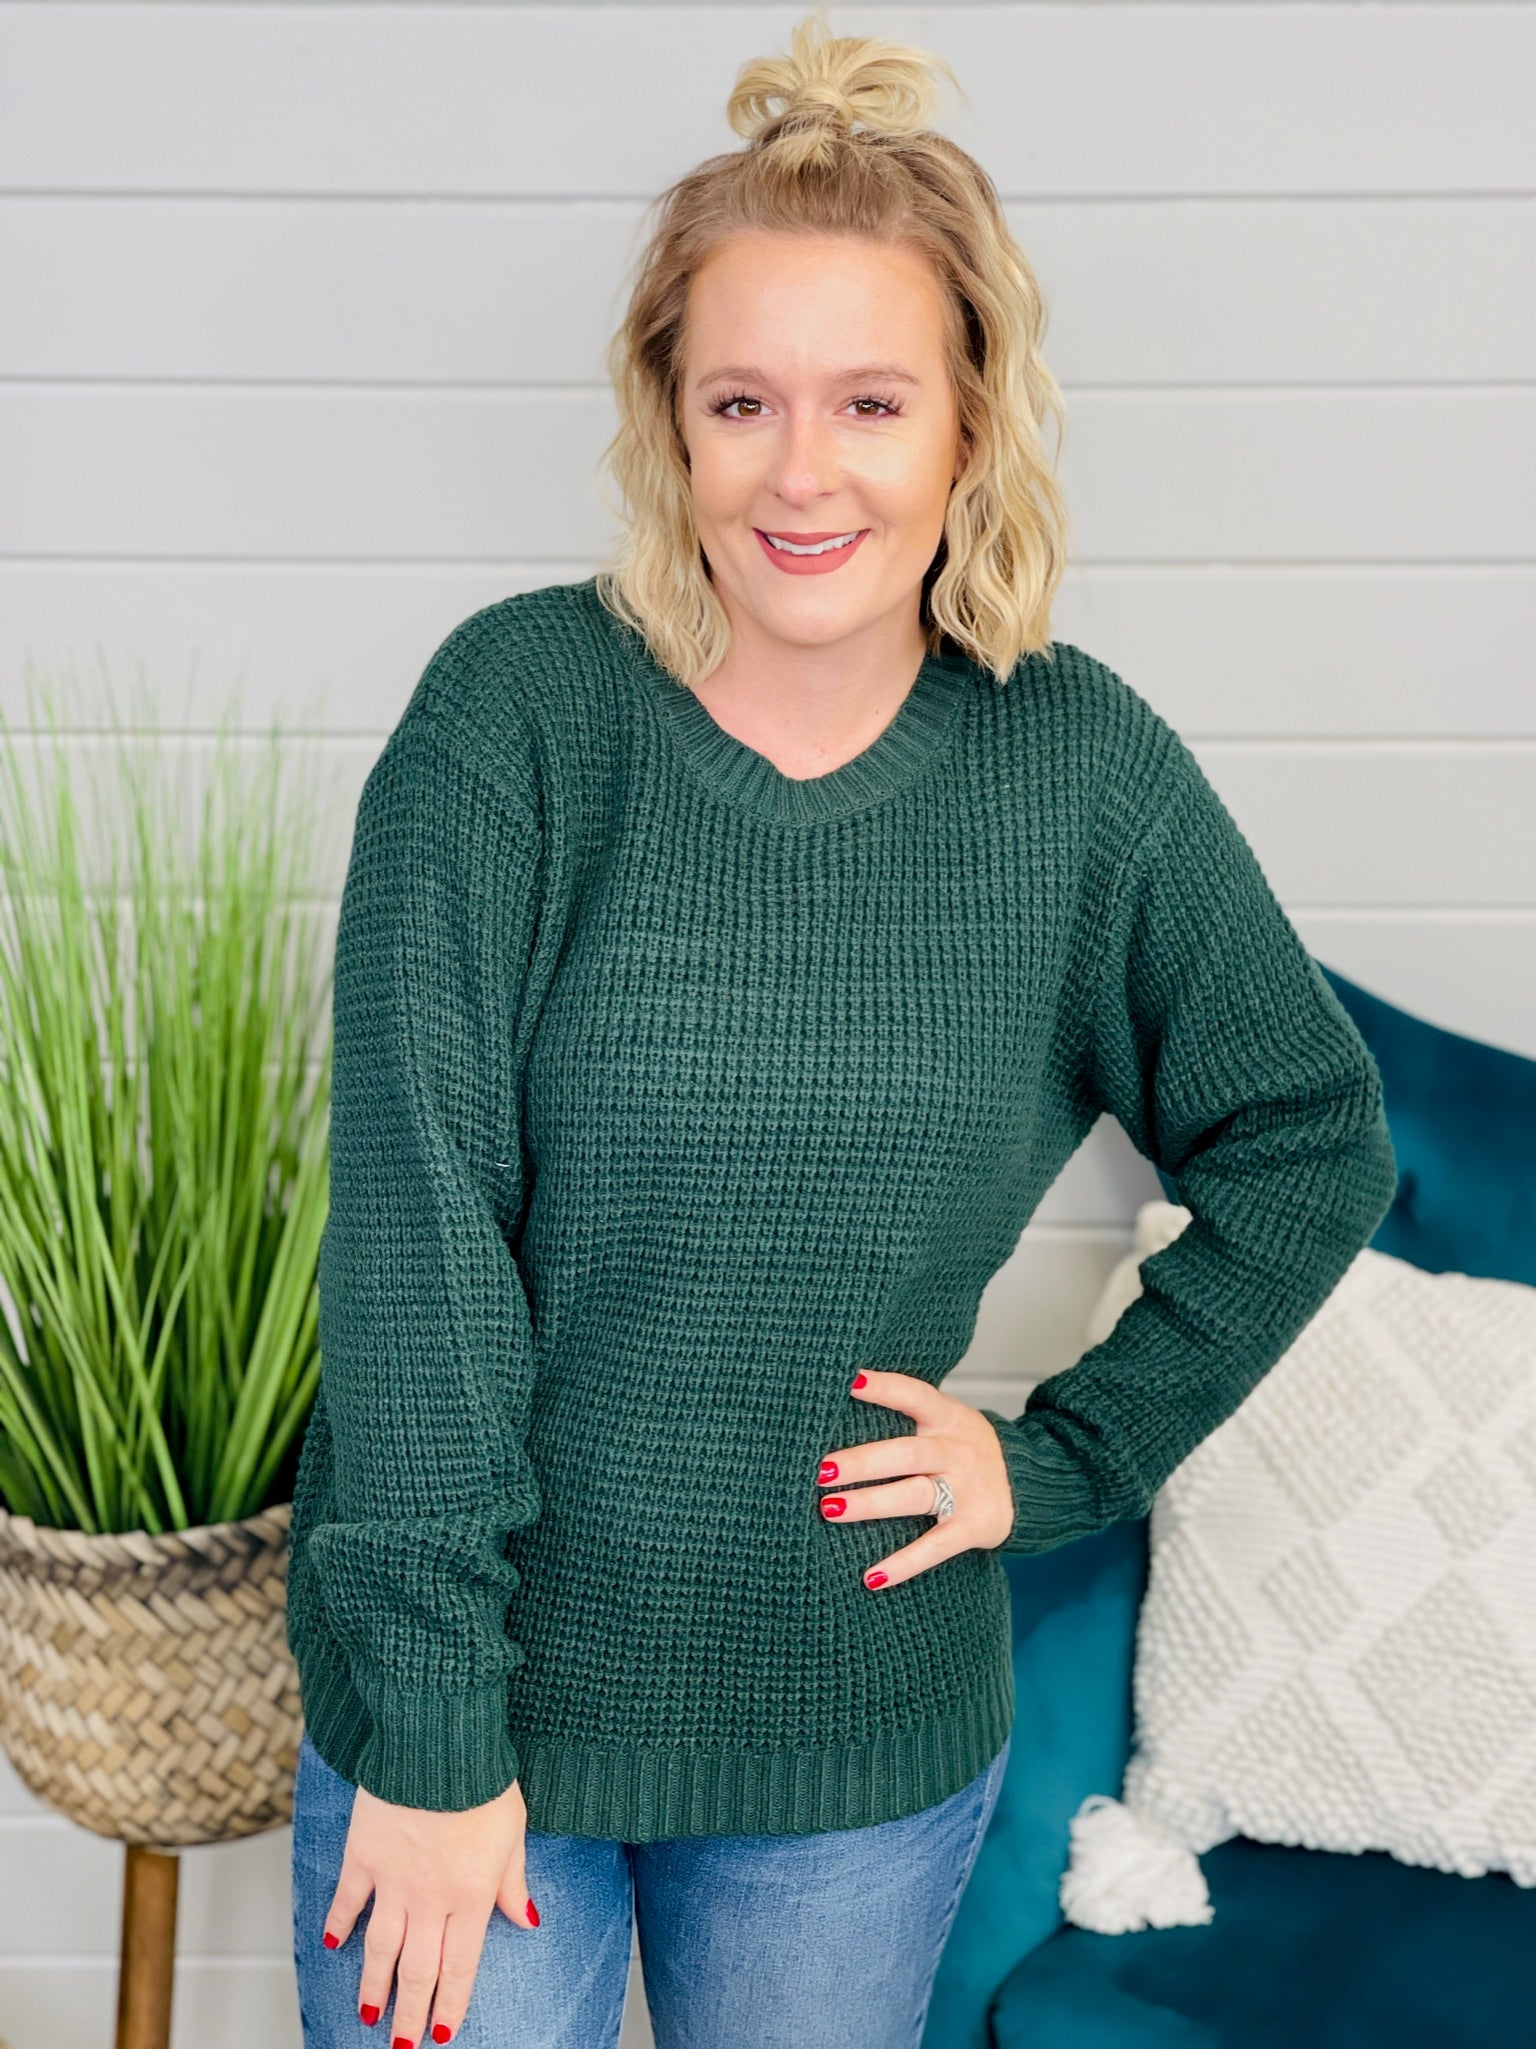 DOORBUSTER PLUS/REG Everyday Babe Sweater- 4 Colors!